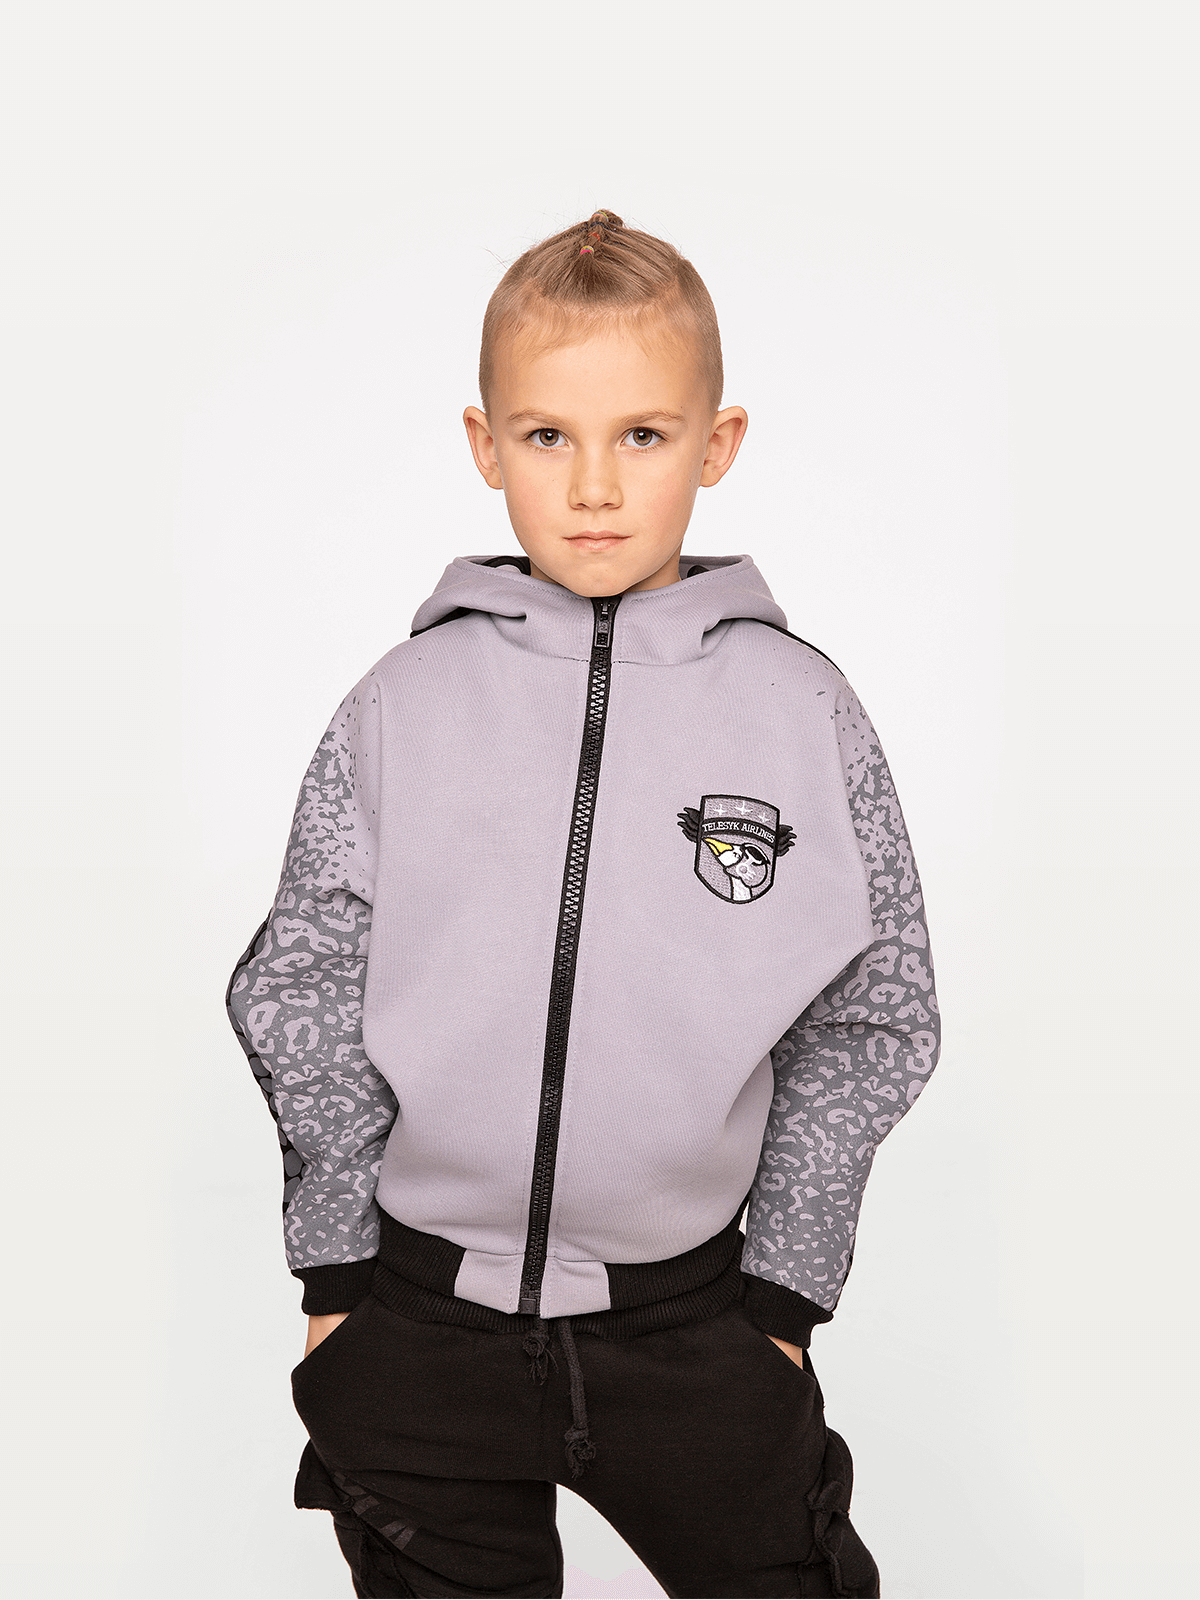 Kids Hoodie Stingray. Color gray.  Technique of prints applied: patches, silkscreen printing.